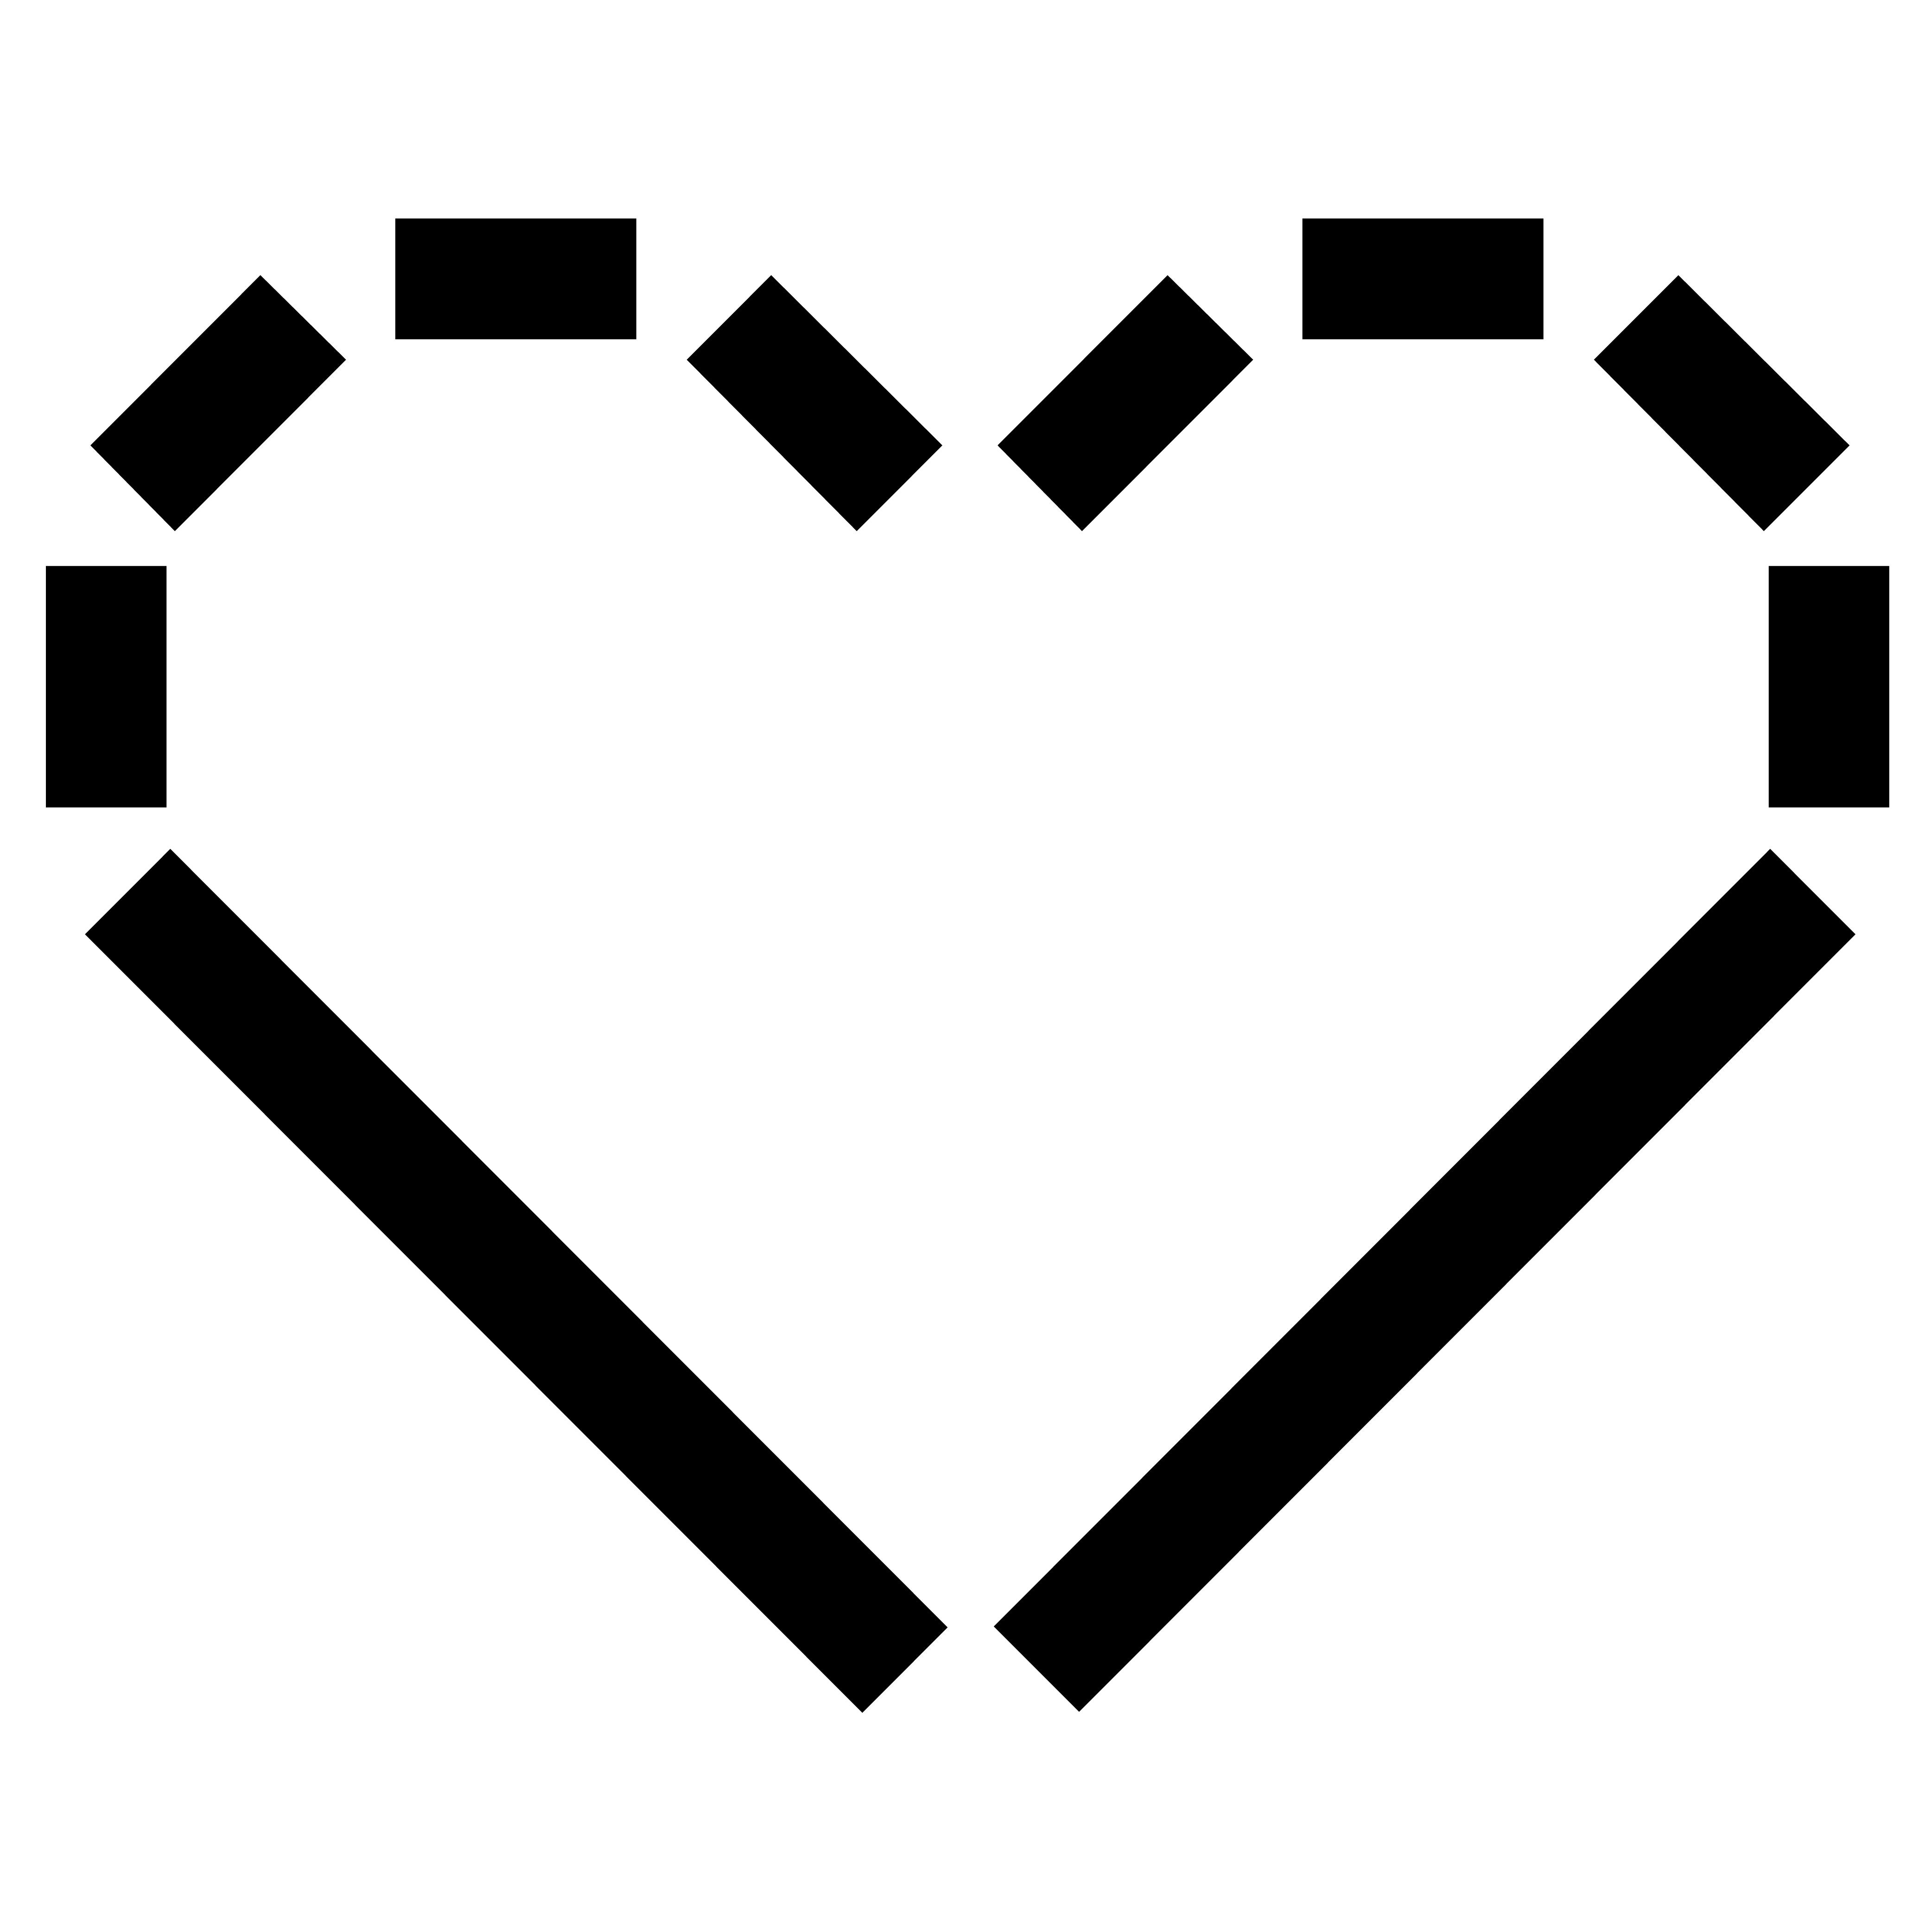 A heart shaped logo in the style of the MCA typeface